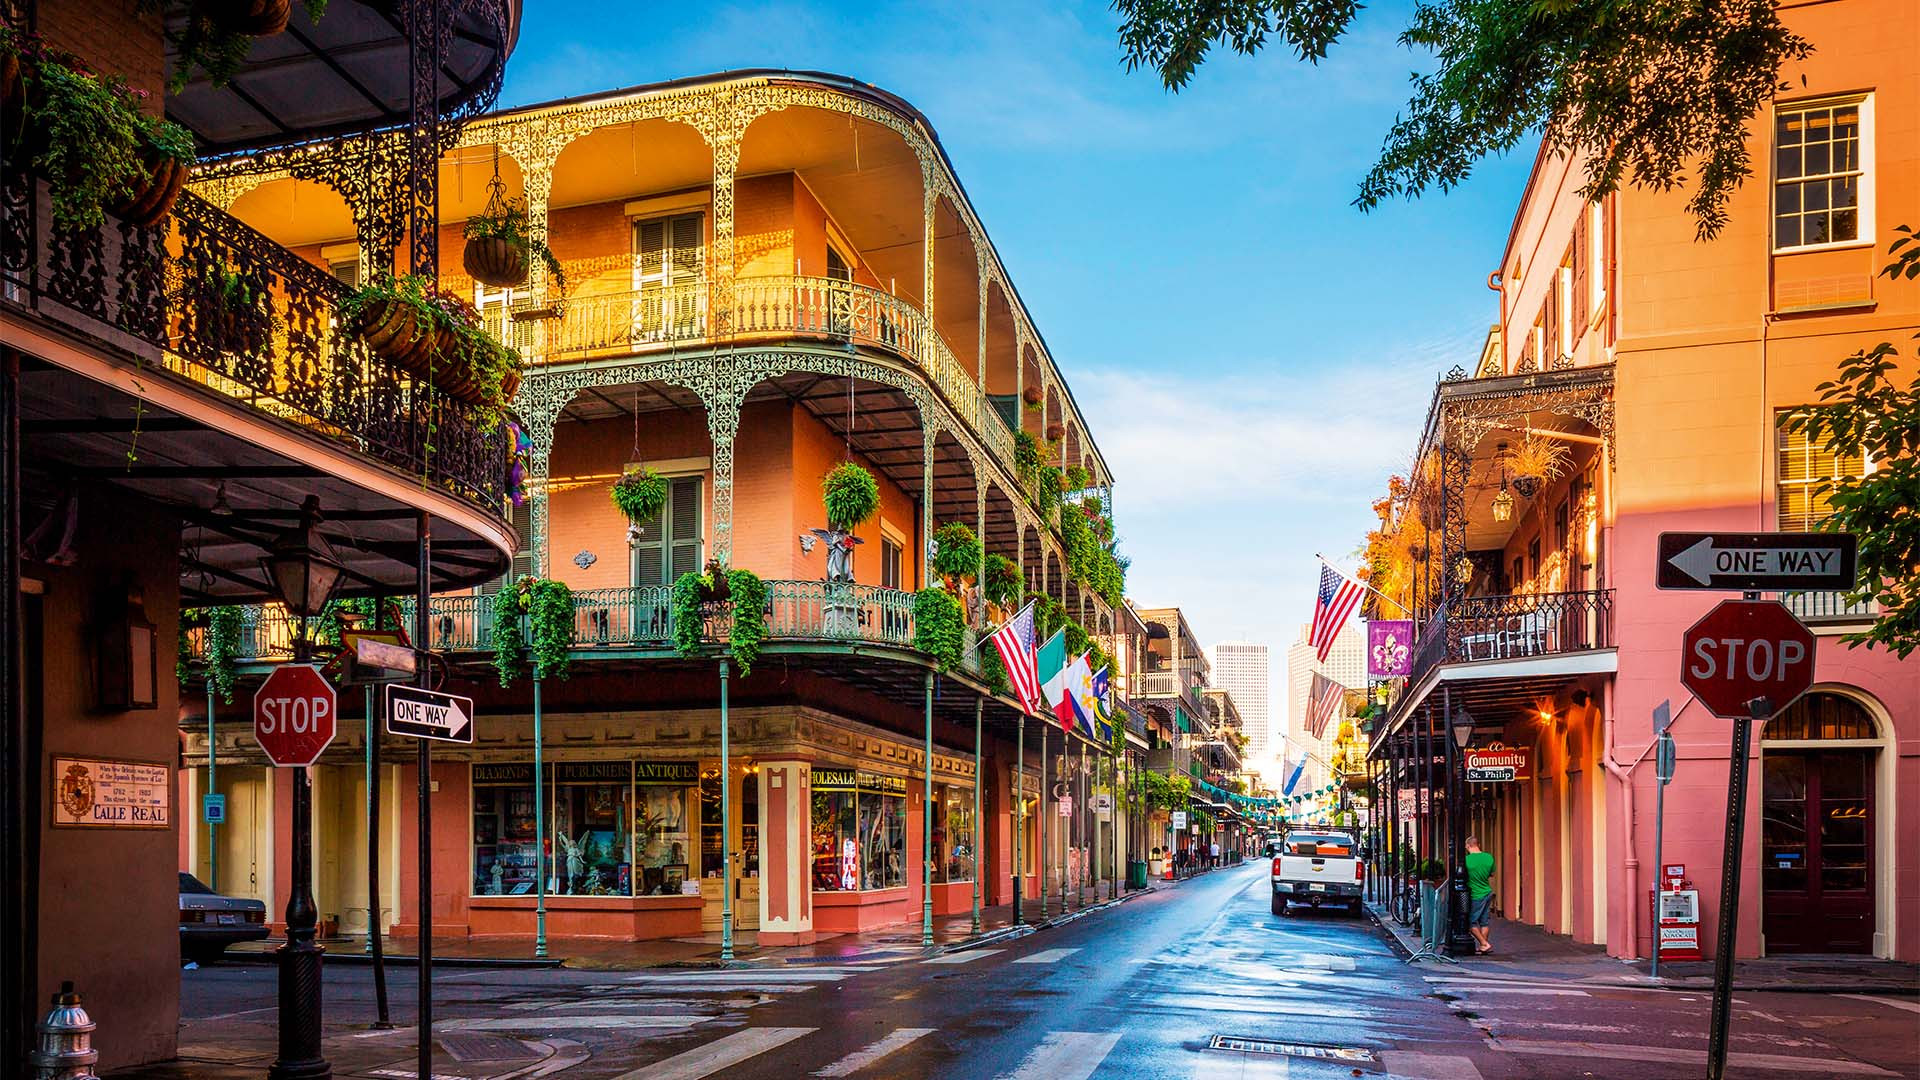 French Quarter area of New Orleans, Louisiana